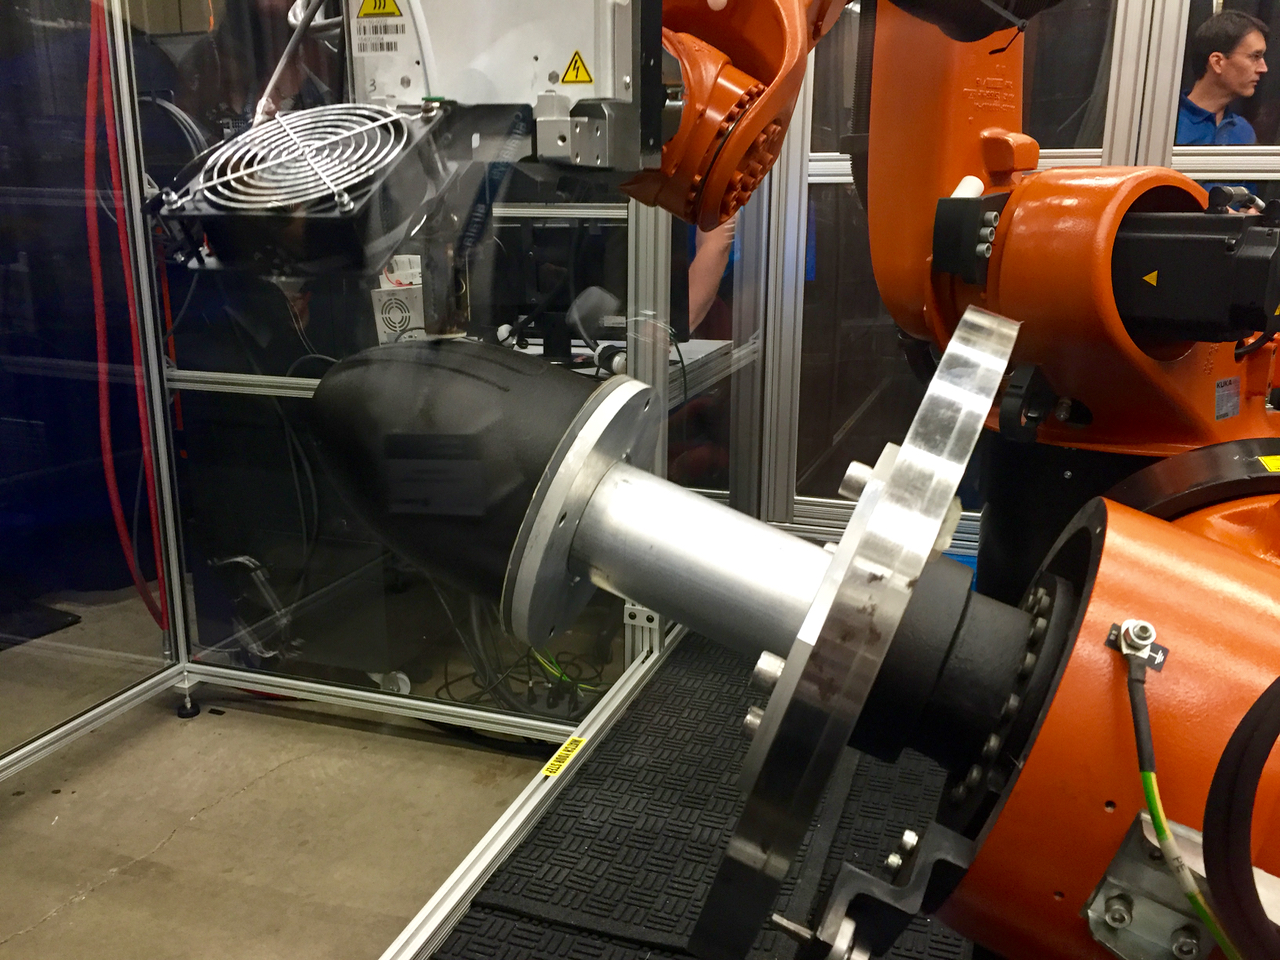 The Stratasys Robotic Composite 3D Demonstrator extruding in unusual directions